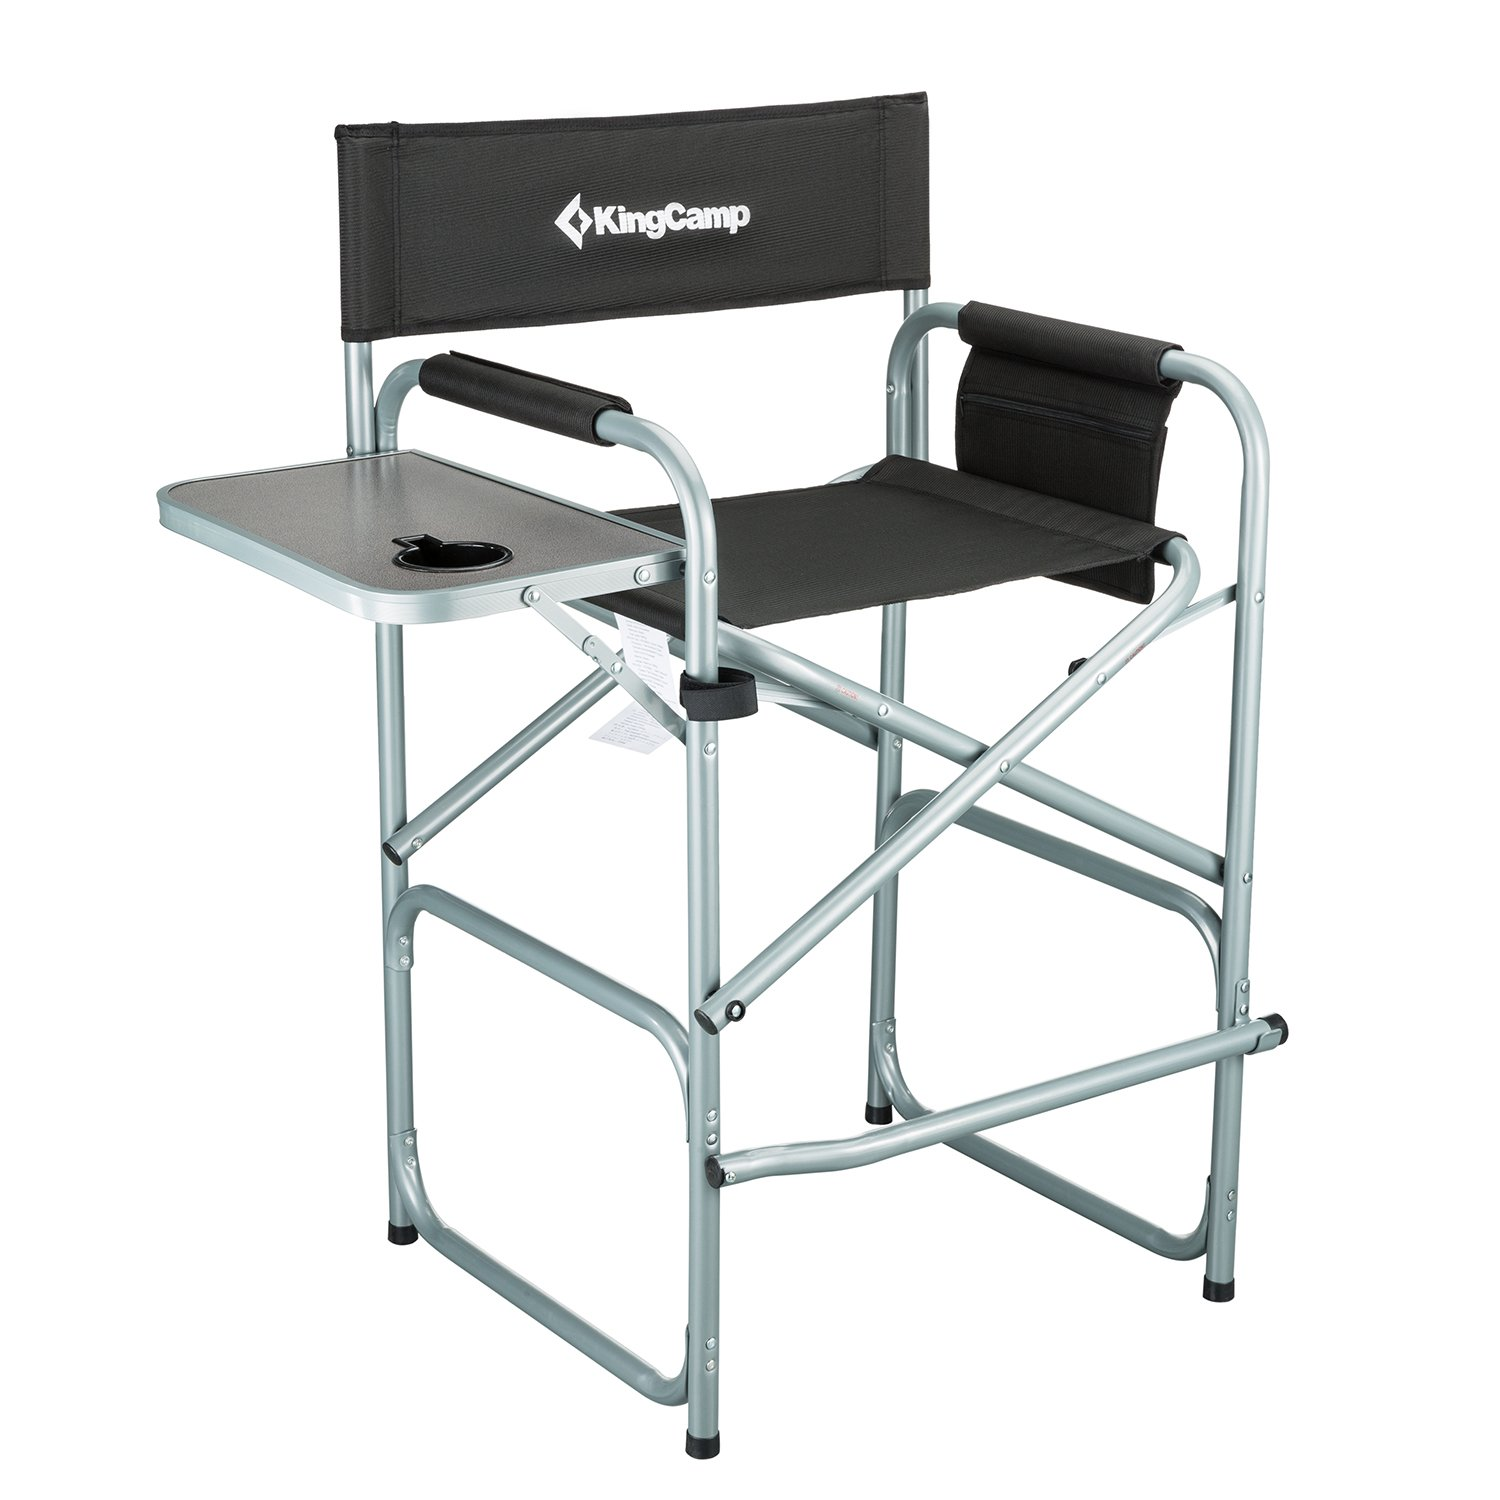 KingCamp Tall Director Chair Collapsible with Side Table